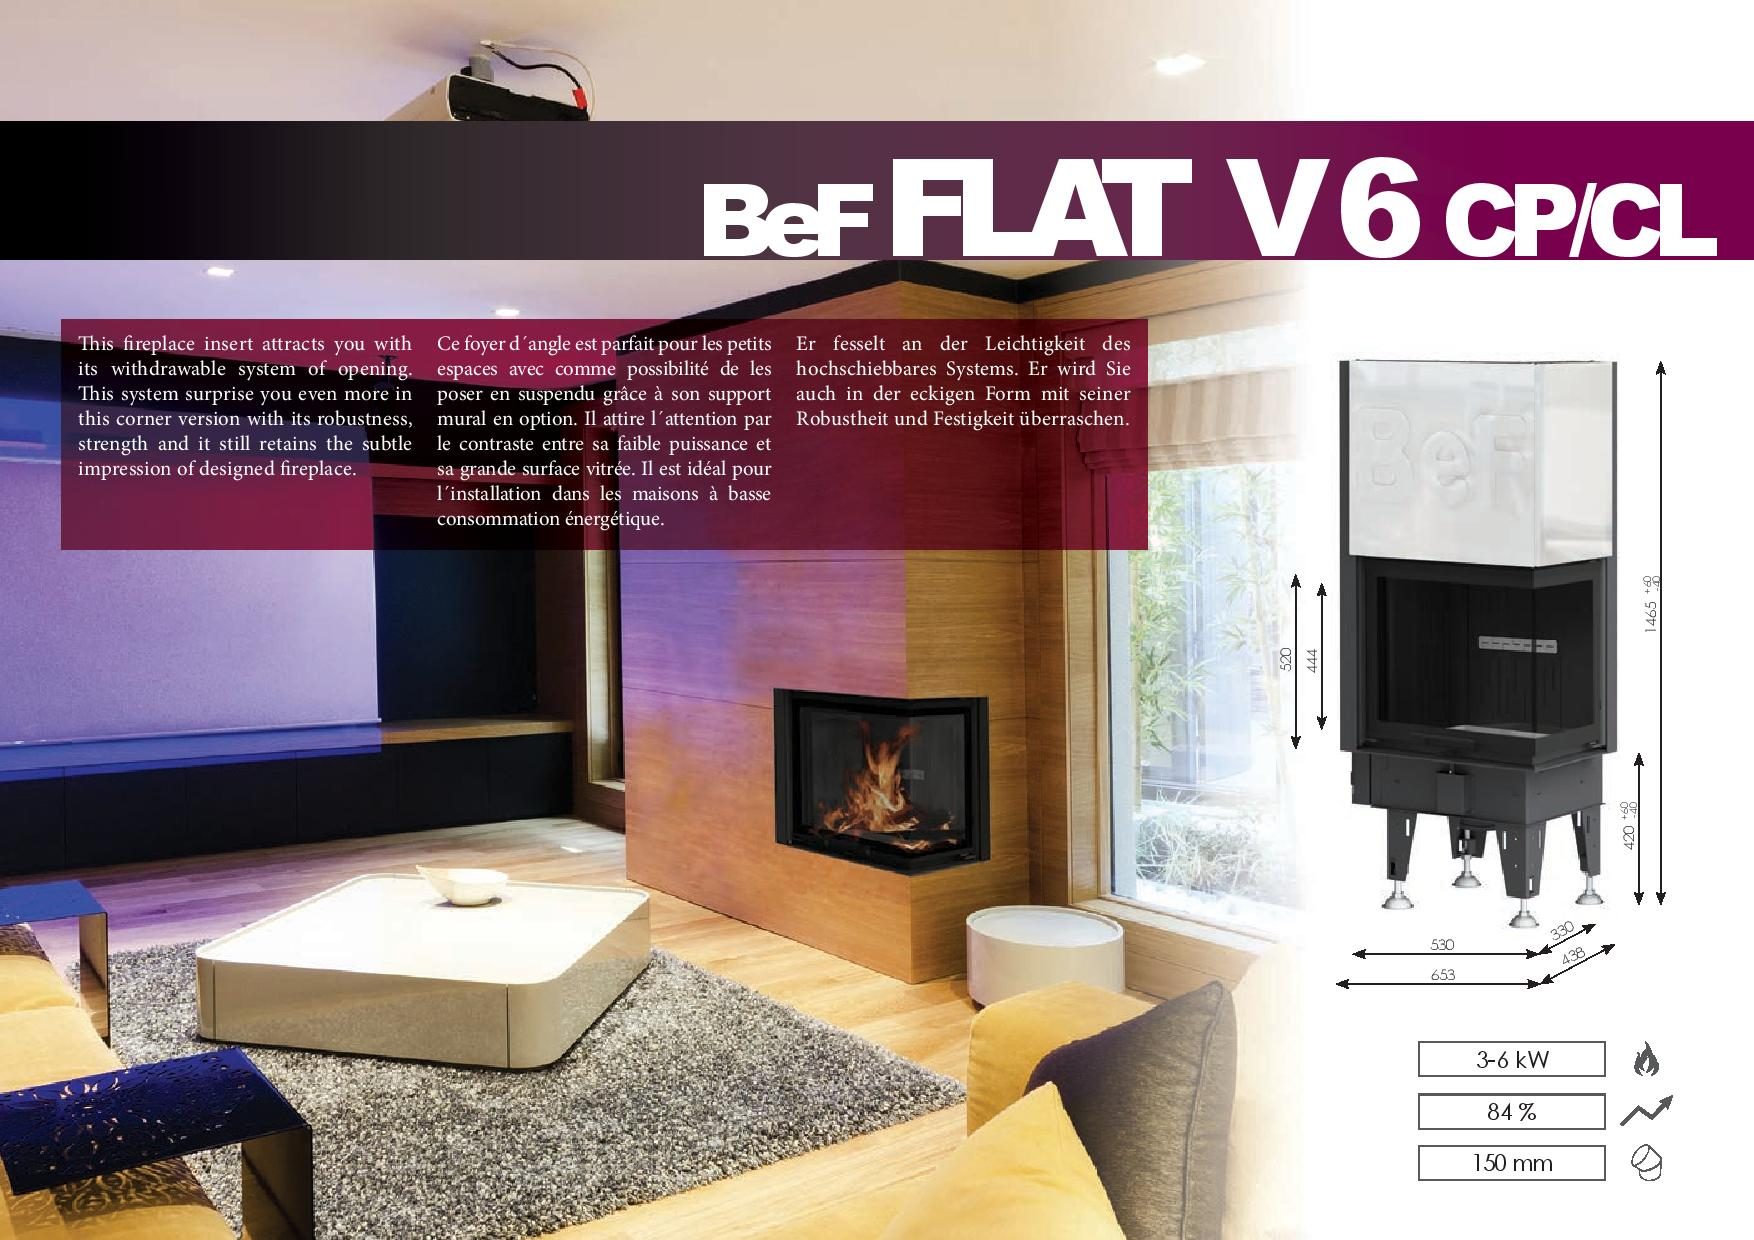 Foyers à bois FLAT BeF HOME 6 kw vitre d'angle relevable